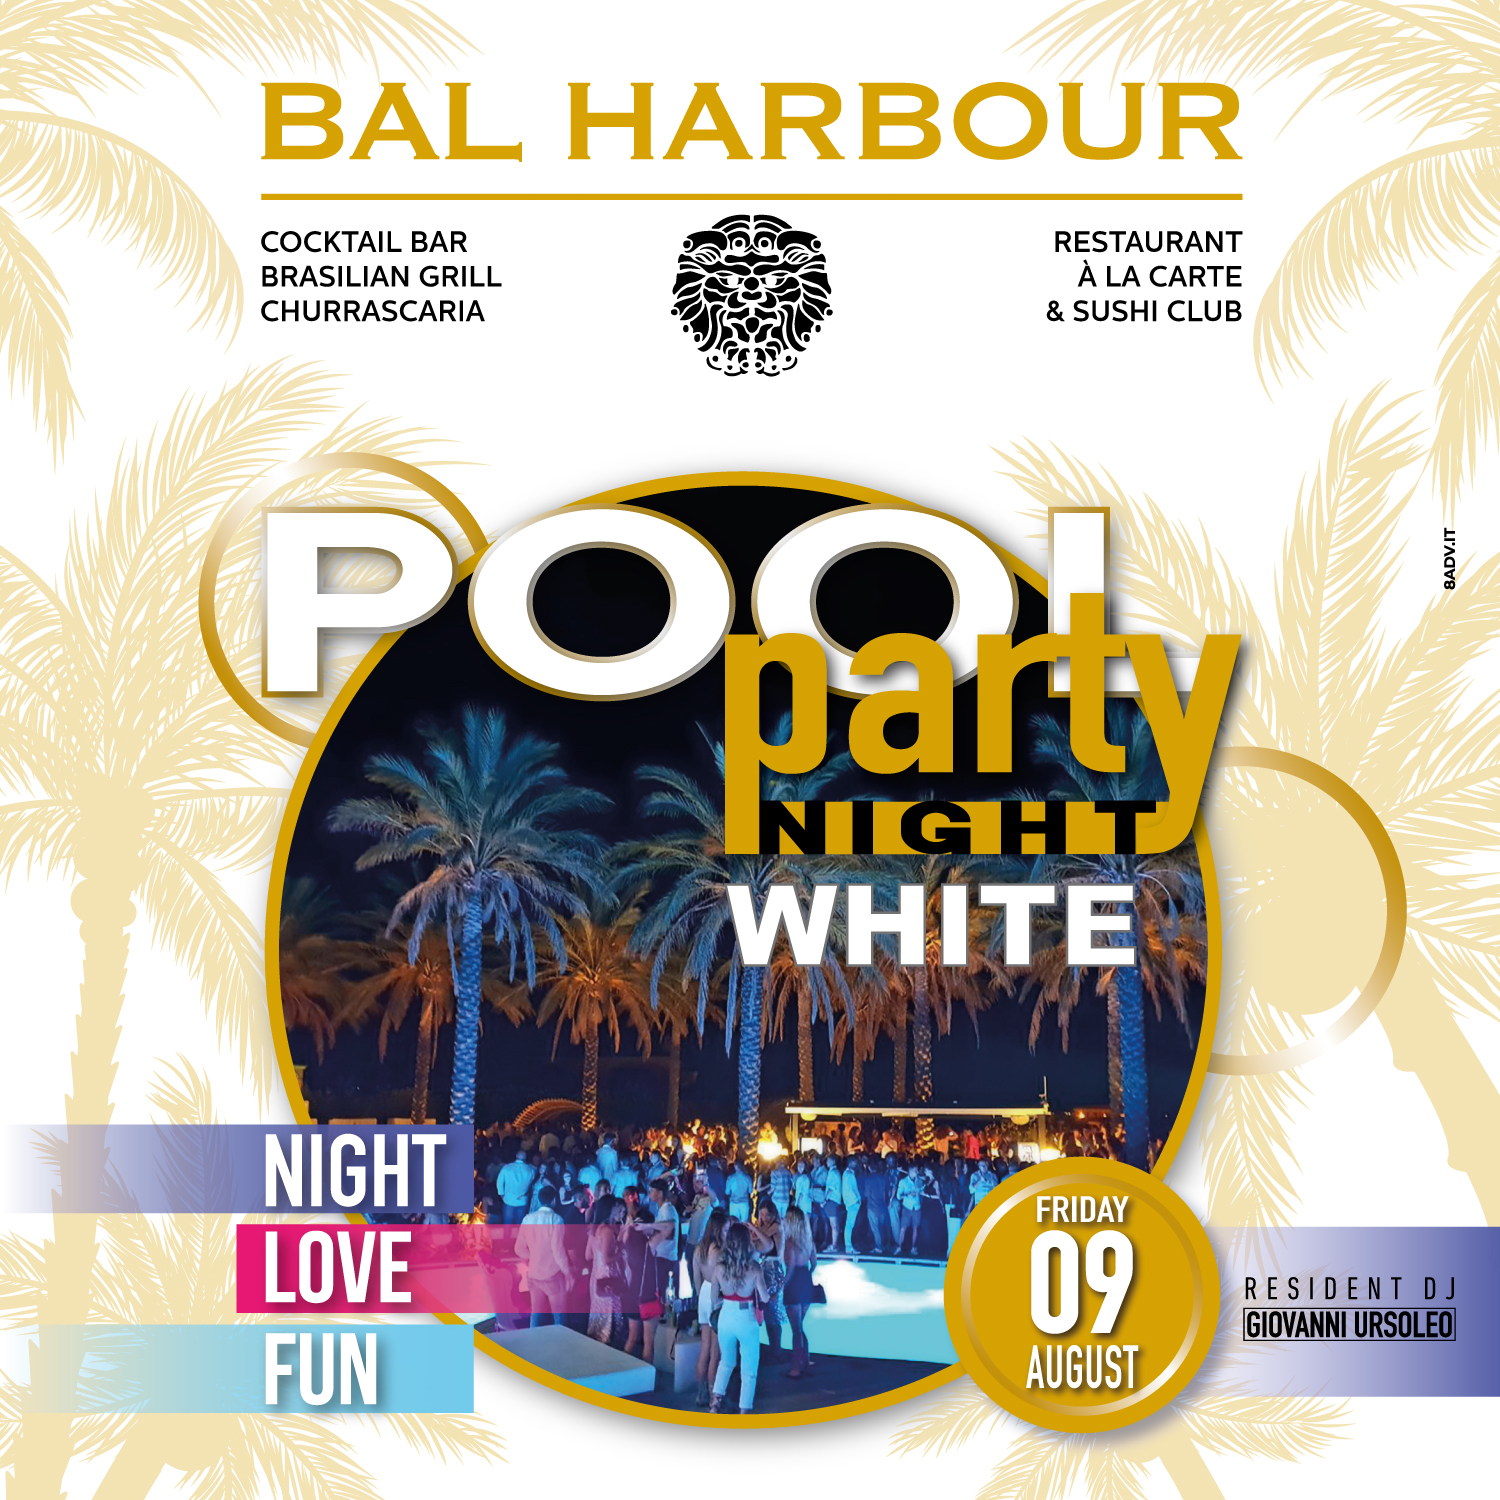 white pool party night bal harbour san teodoro summer sardegna